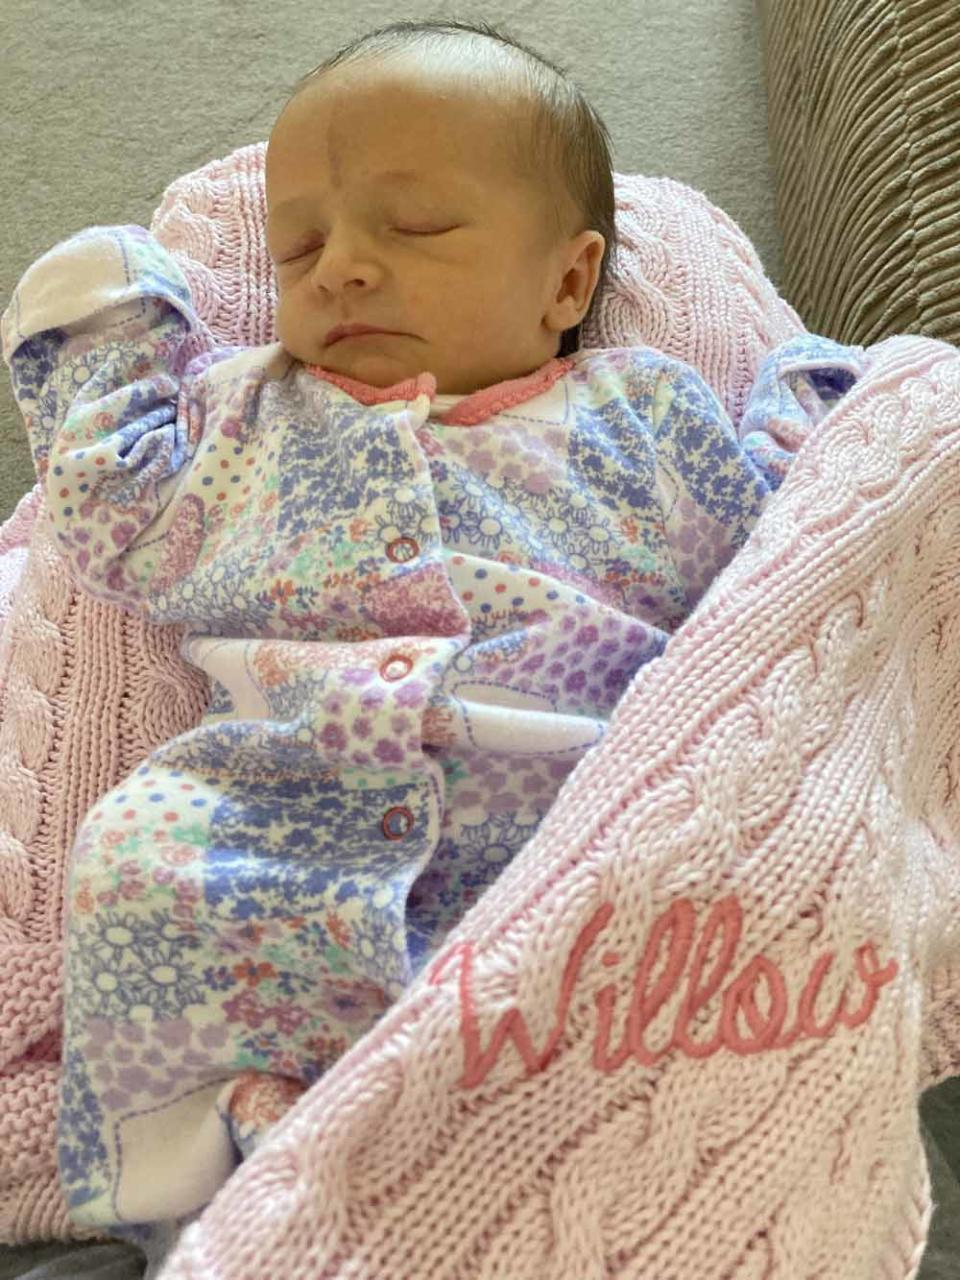 Baby Willow Grace on a hospital blanket. PA REAL LIFE